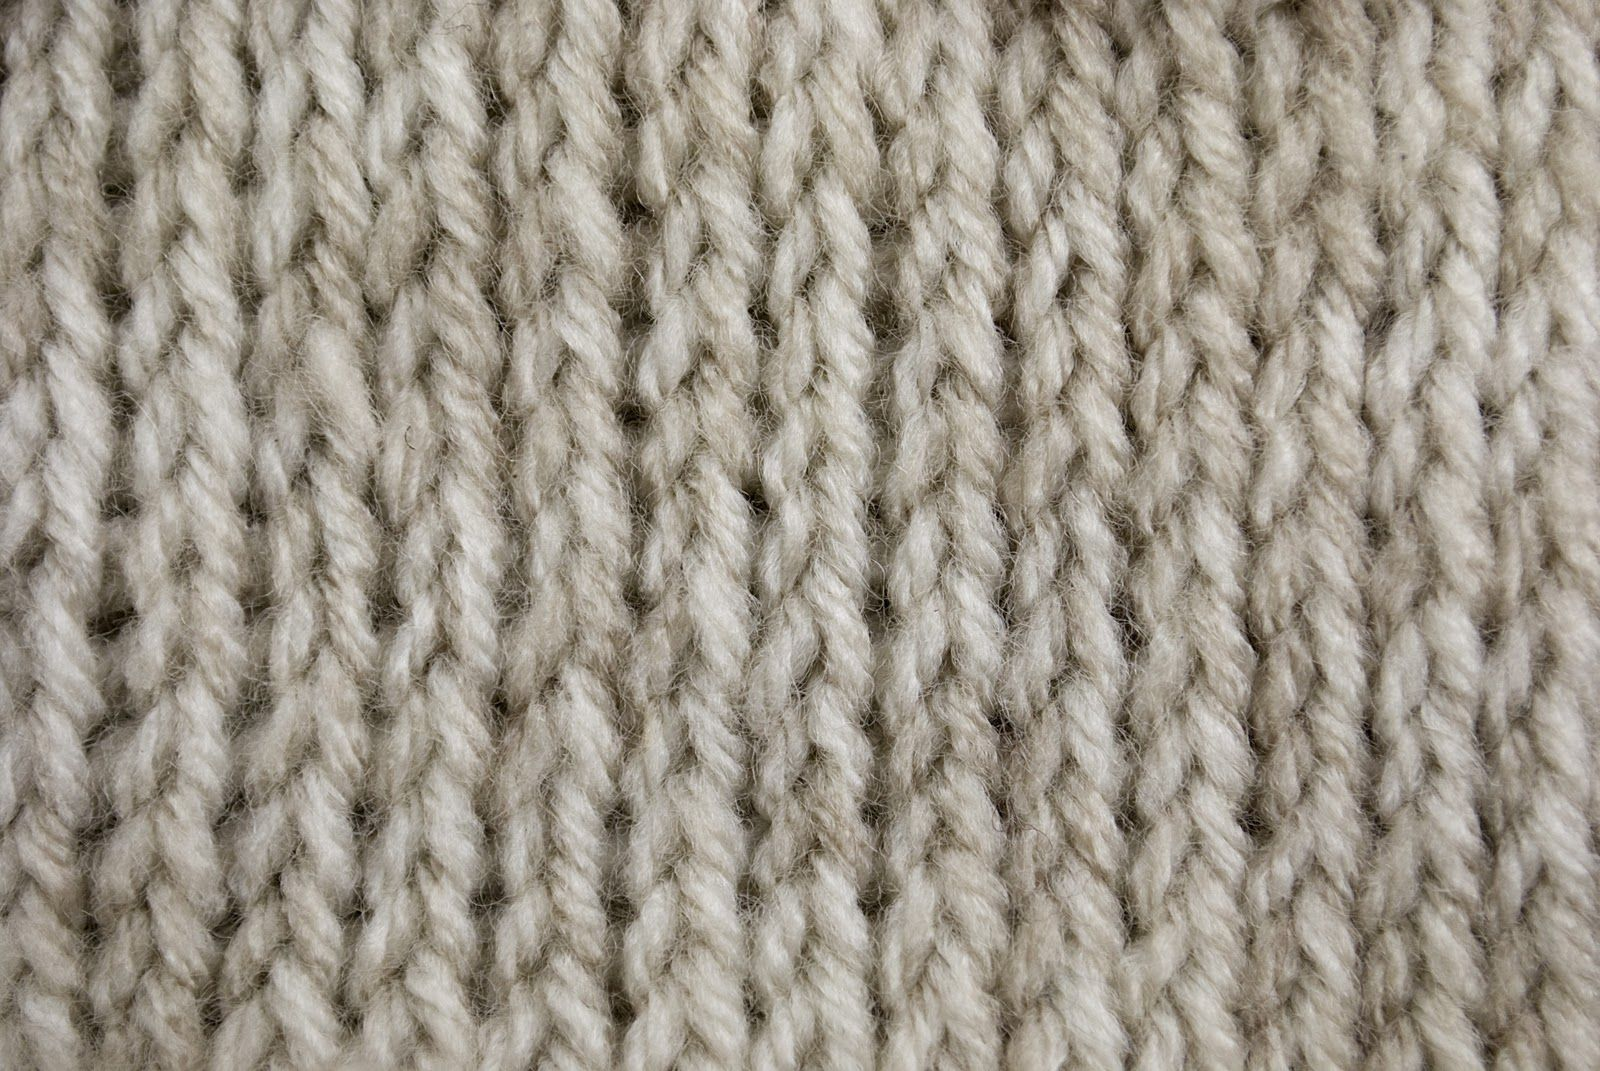 Knitting Different Stitches Pictures : Tunisian Crochet: Tunisian Knit Stitch (Tks) Pretty crochet Pinterest T...